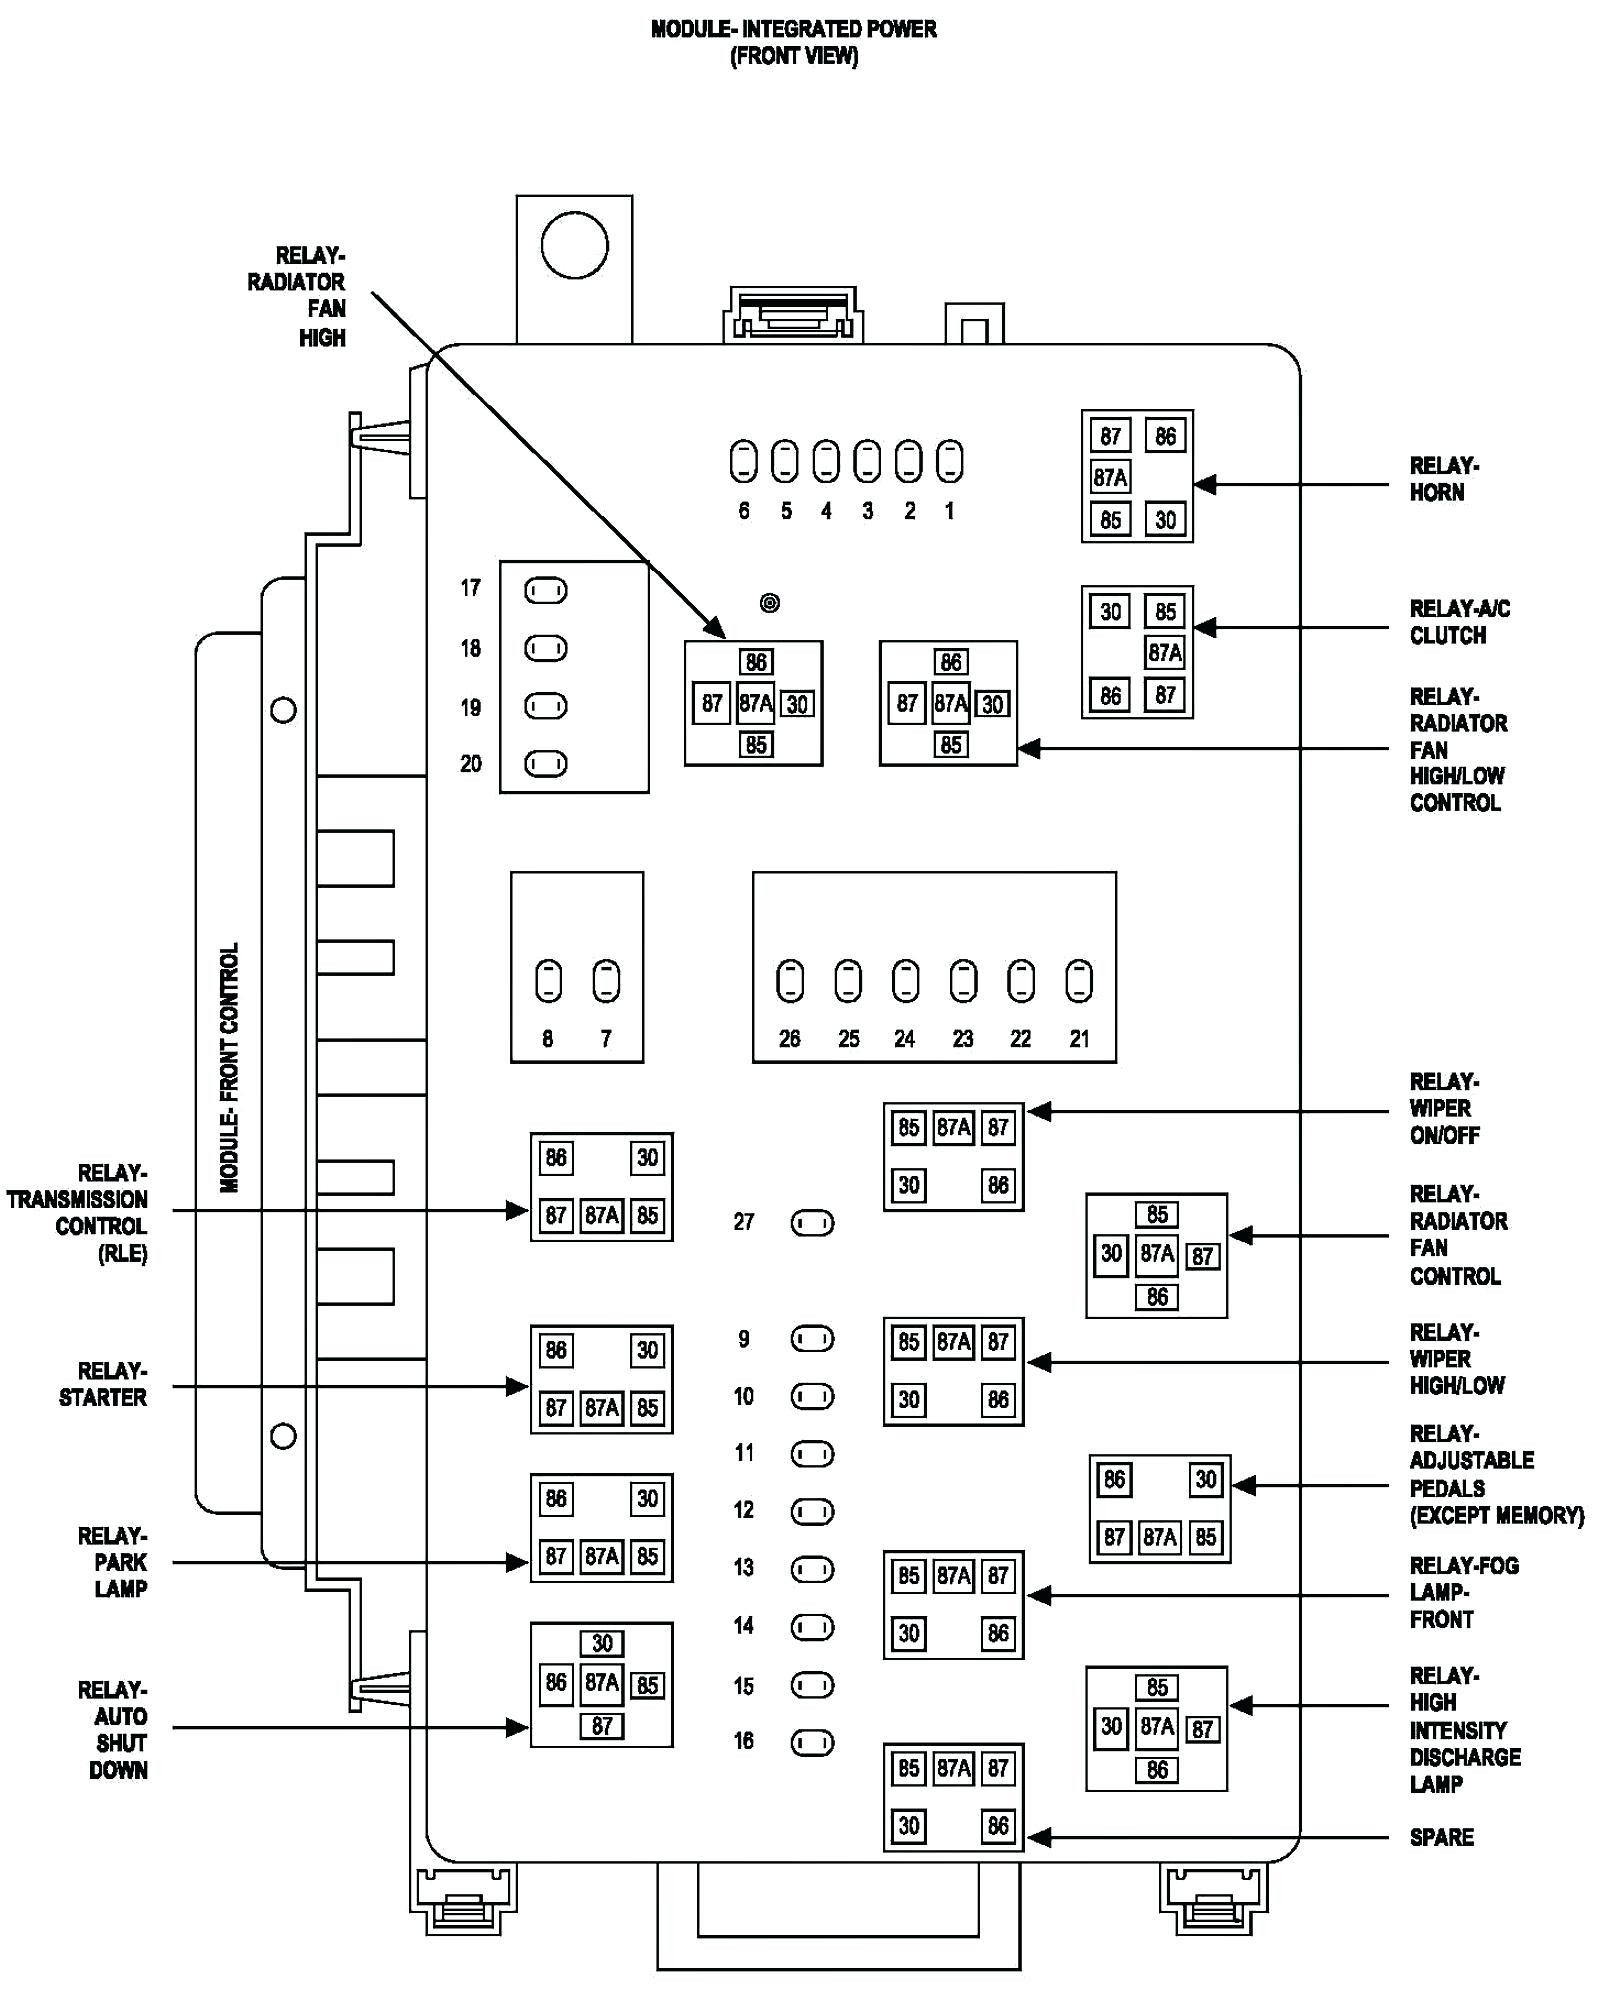 fuse panel diagram for 2007 dodge charger